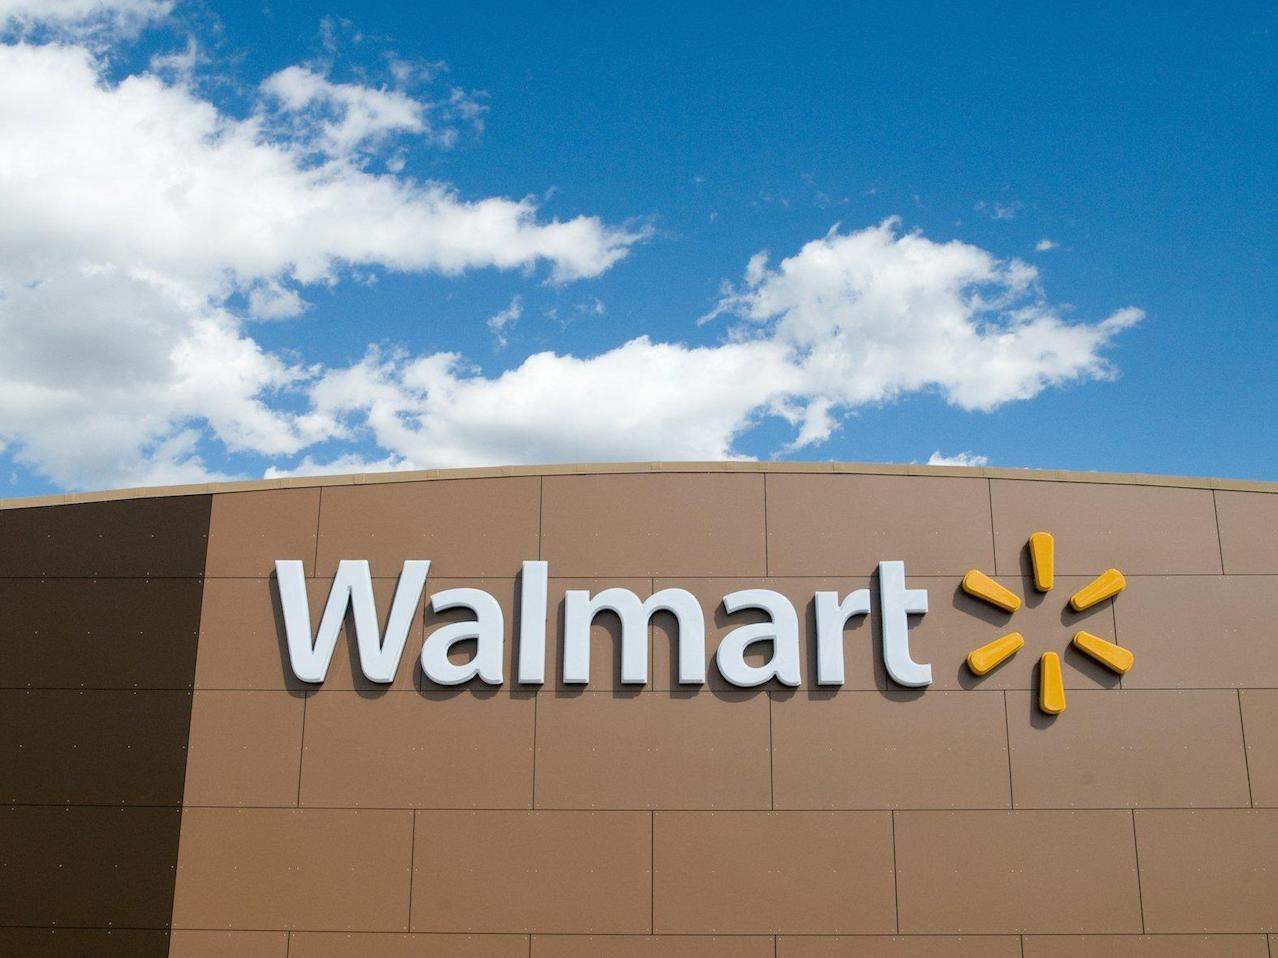 Police are investigating a social media threat of the 'biggest mass shooting in modern American history' targeting Walmart stores in Missouri